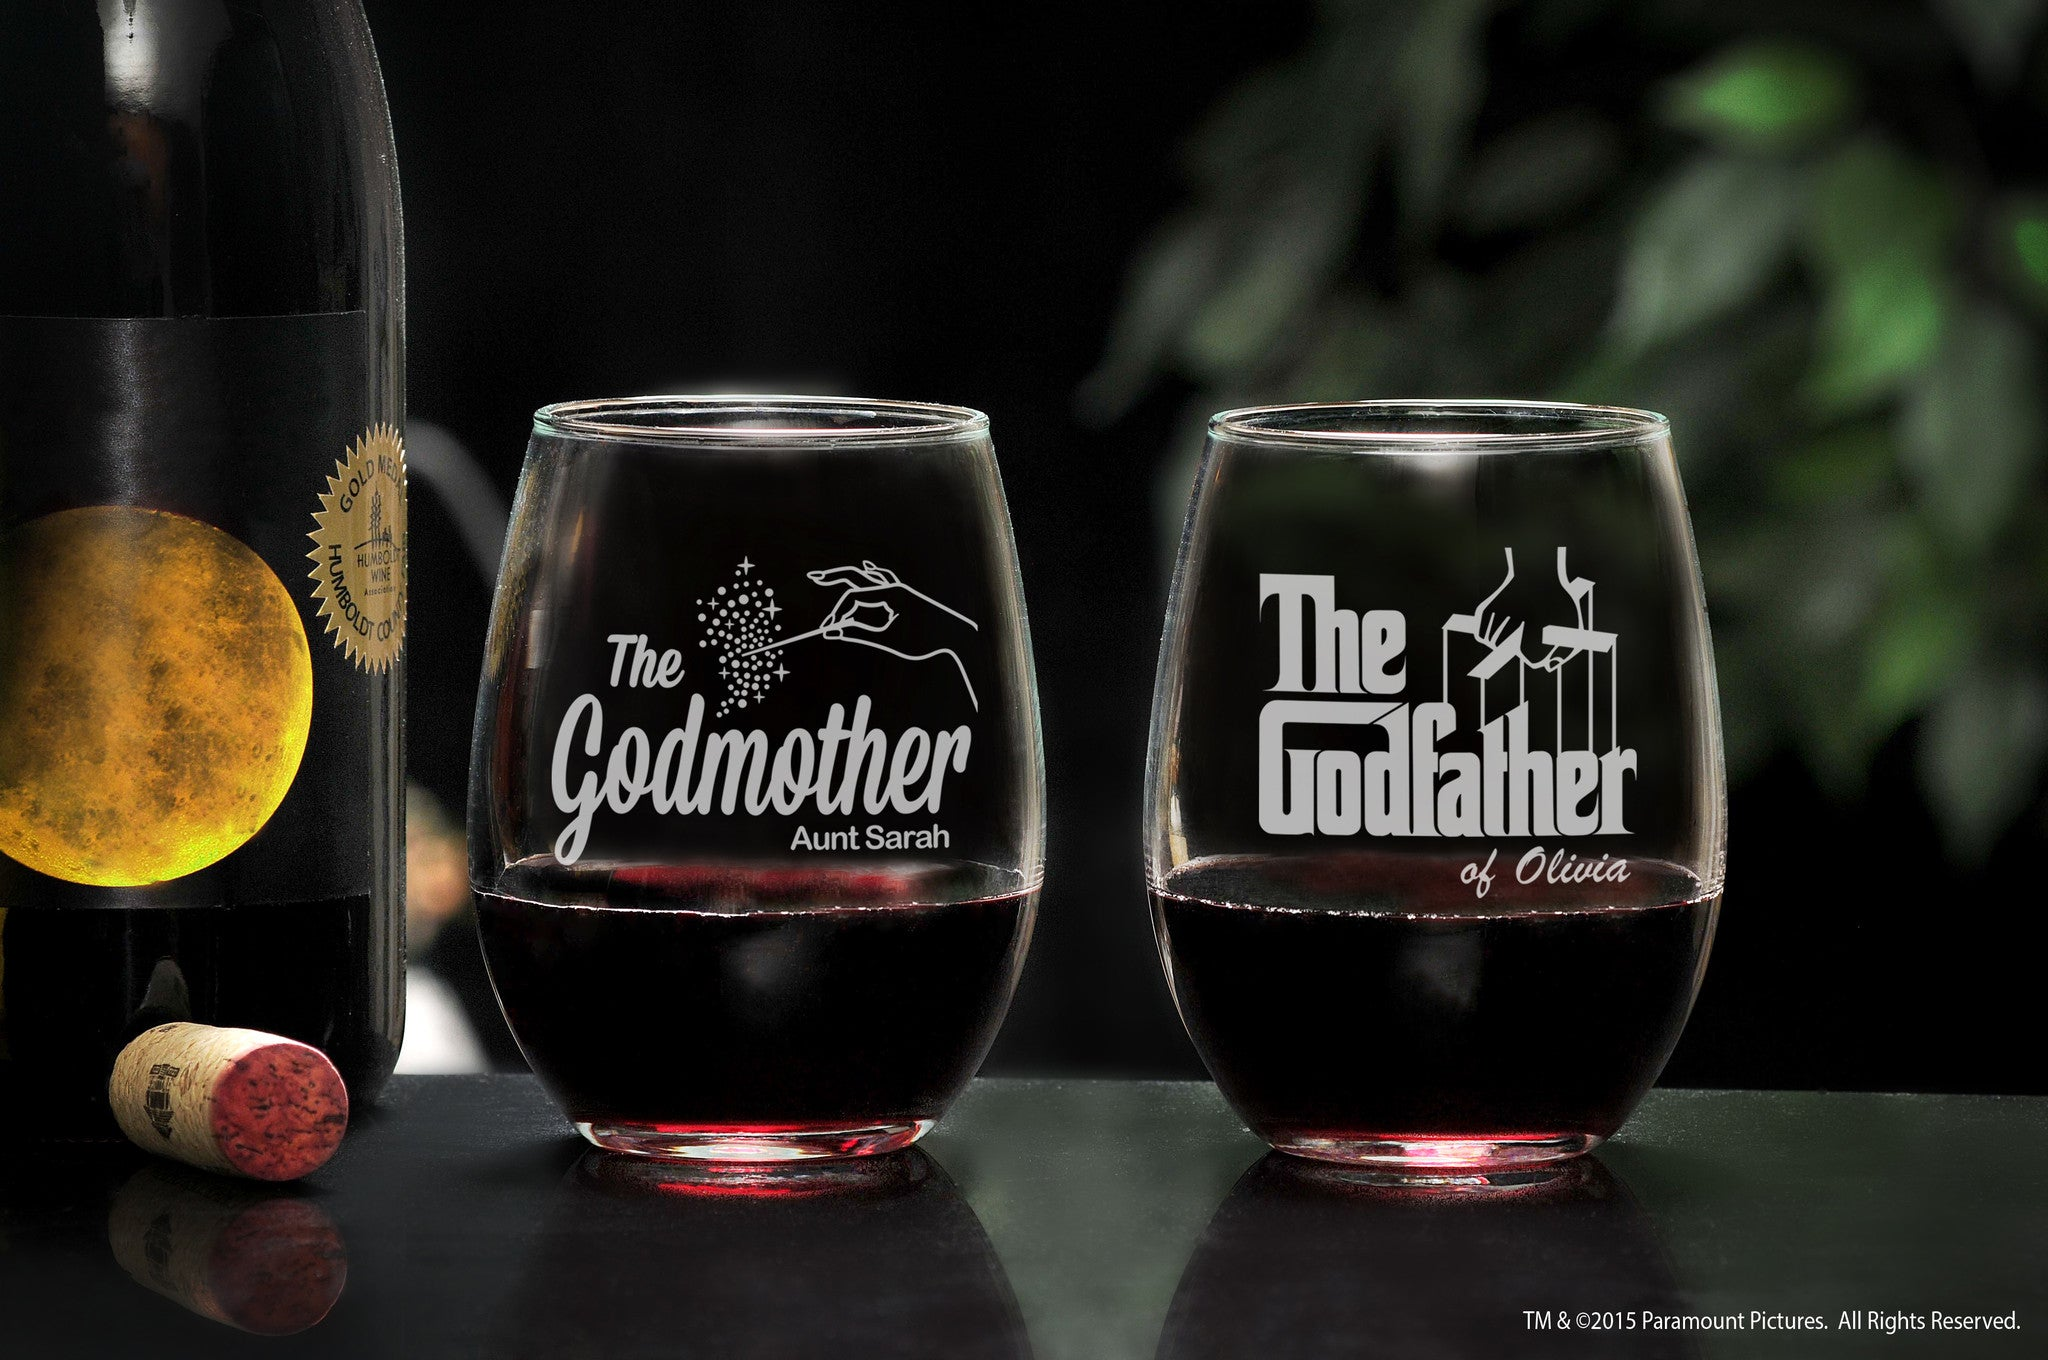 Wedding Personalized Stemless Wine Glasses personalized stemless wine glass set for godparents godparent two glasses with and the godfather